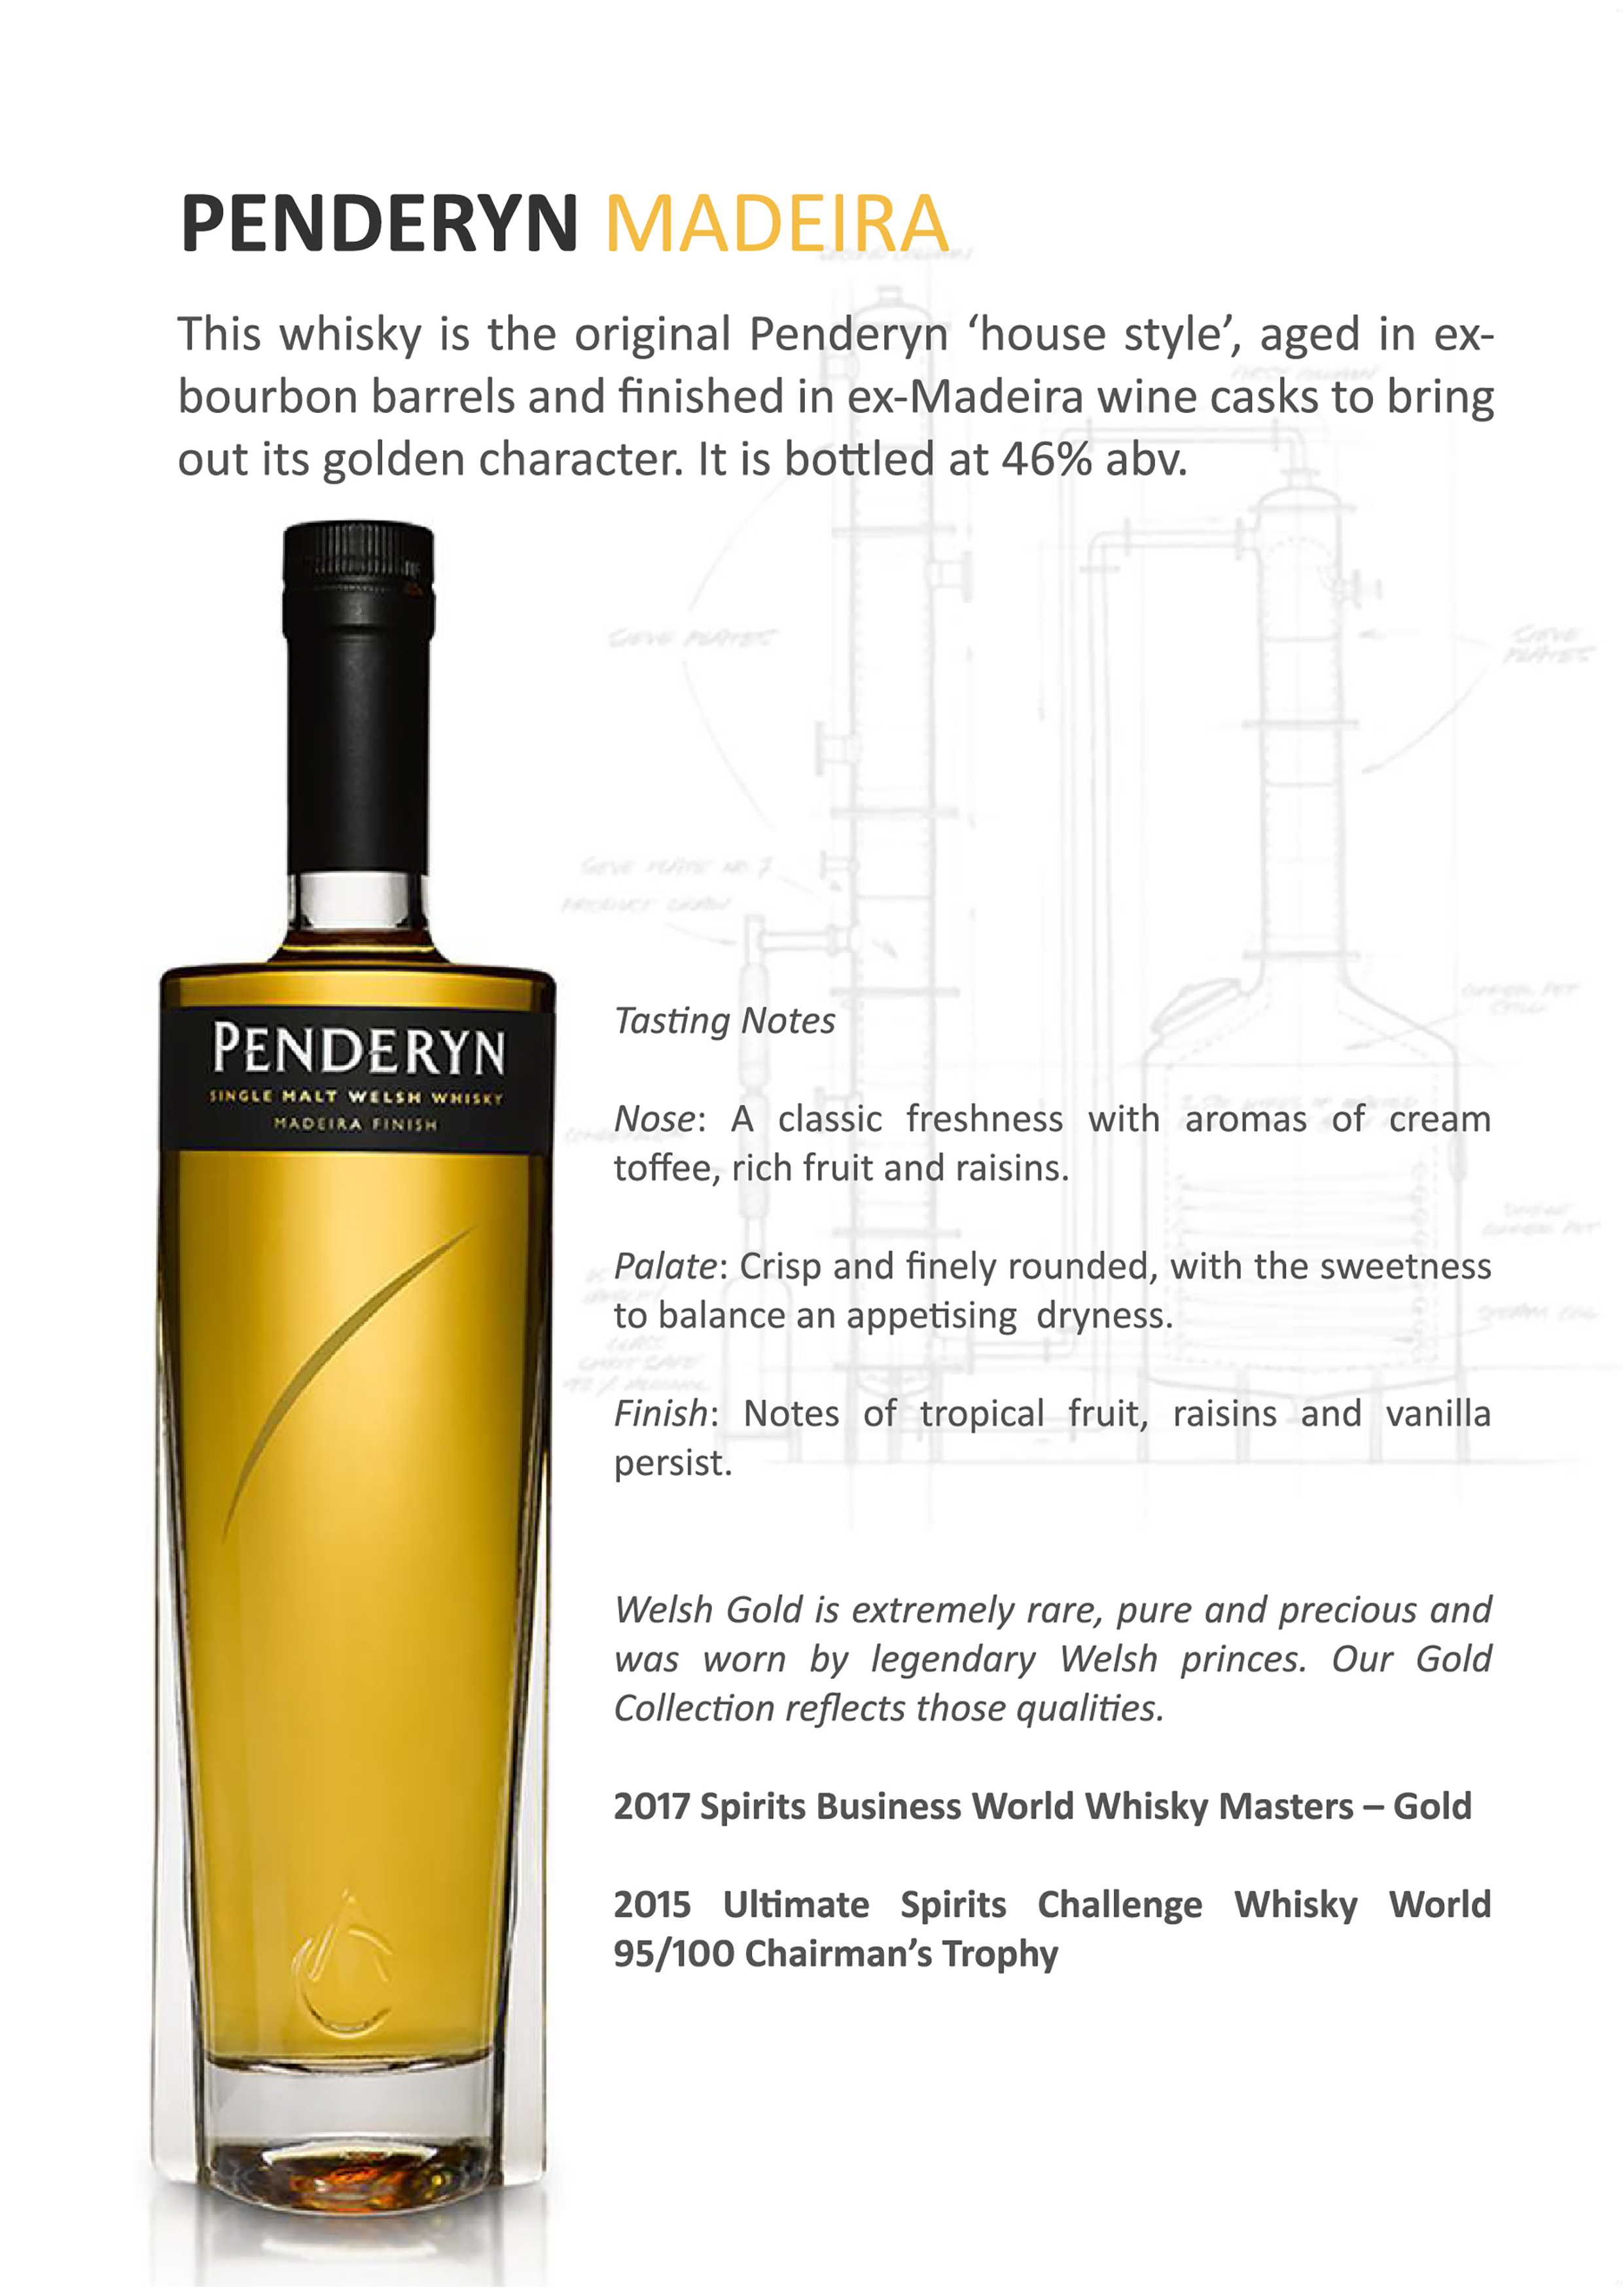 Penderyn Madeira Single Malt Welsh Whisky Tasting Note